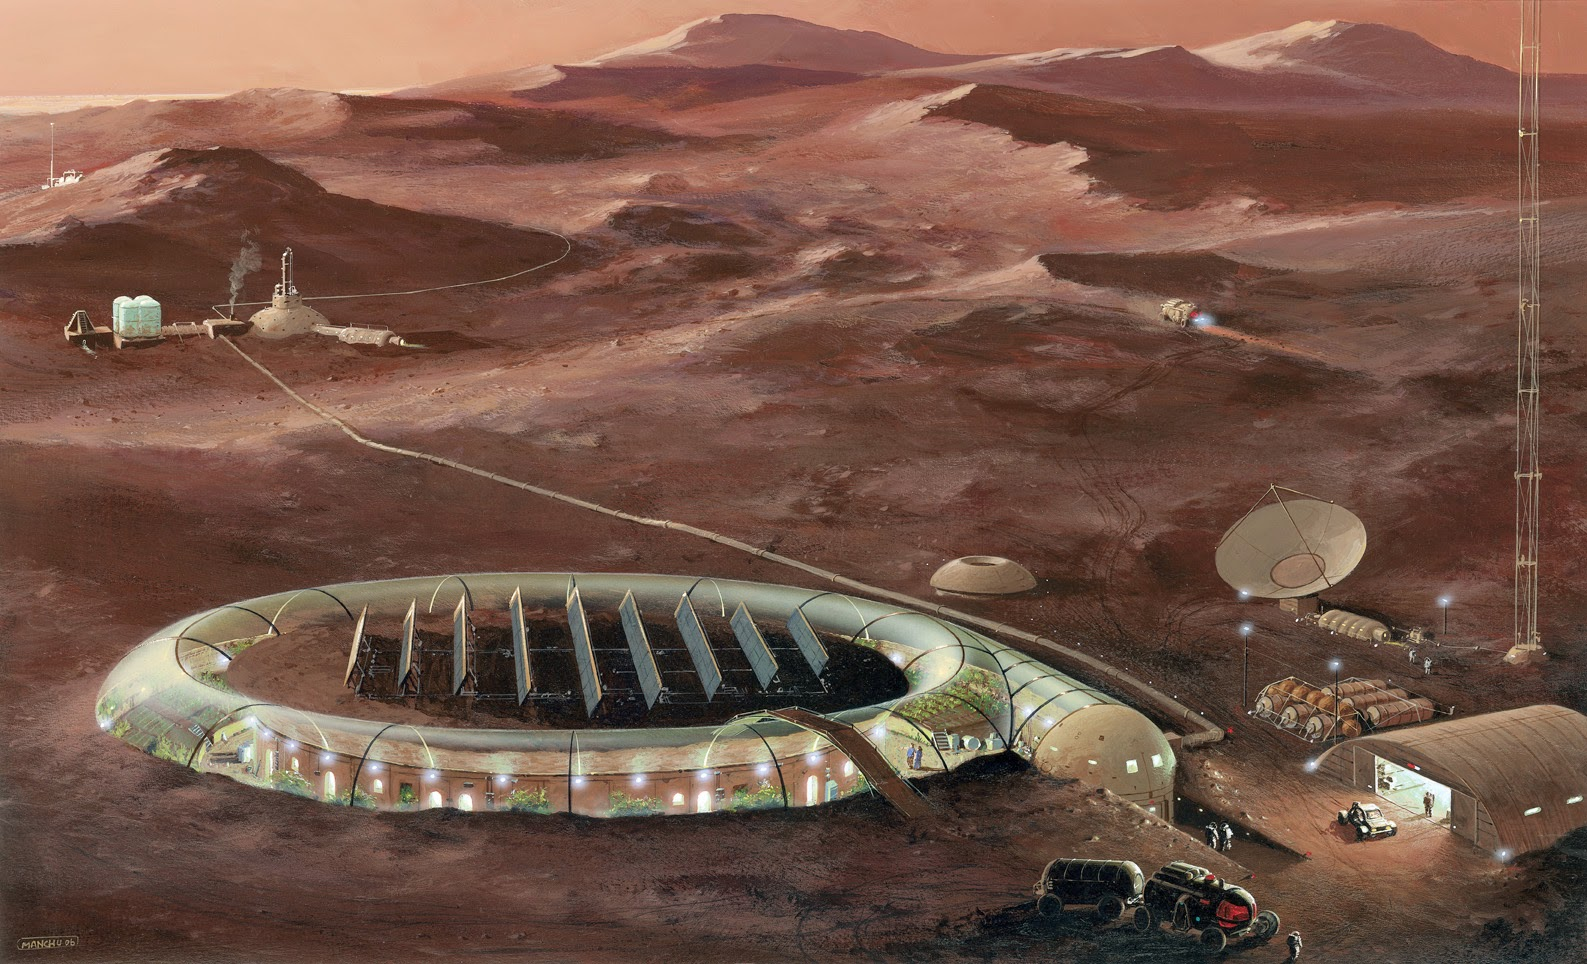 Mars colony by Manchu